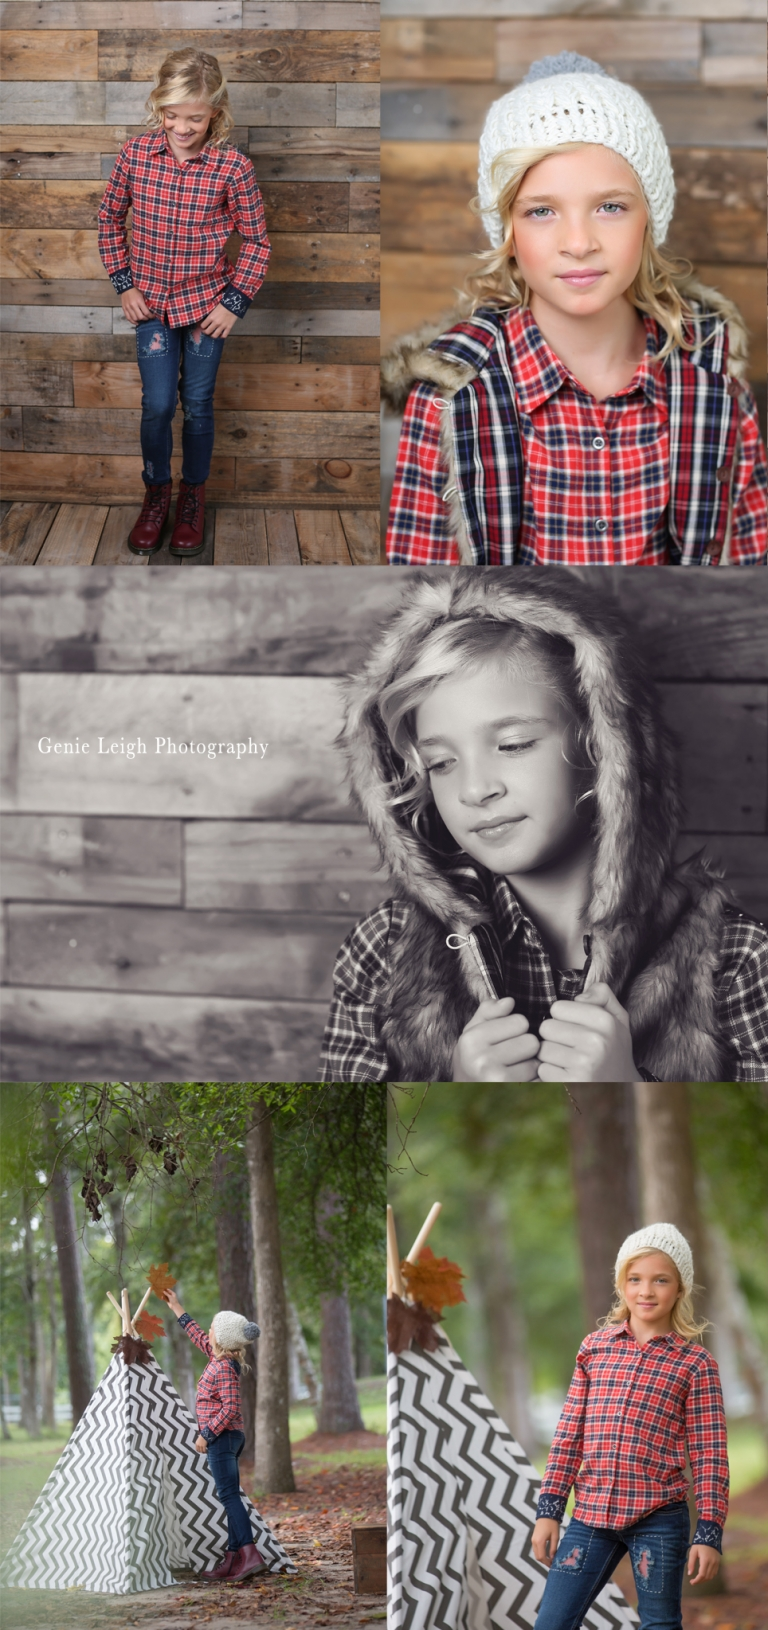 Genie Leigh Photography Studio, Shallotte, NC , Kids Fashion, Fall 2015